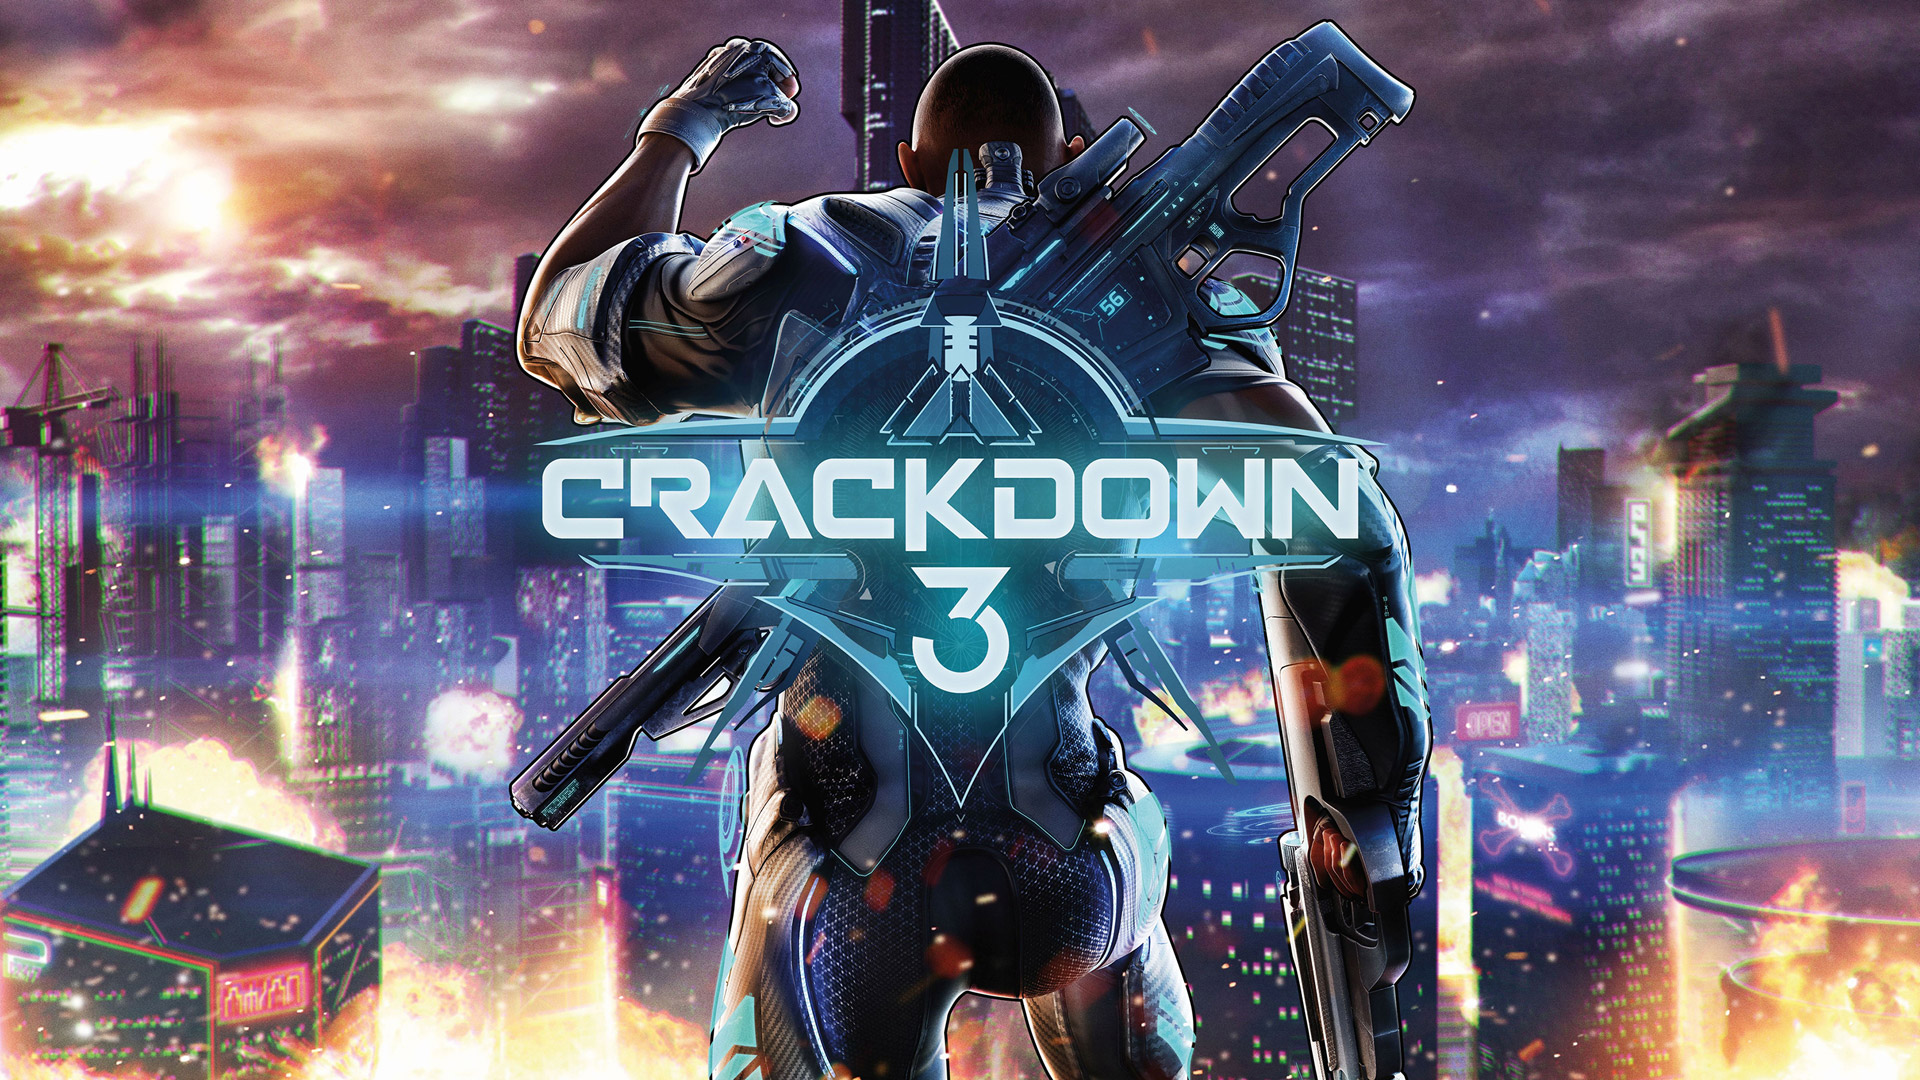 Crackdown 3 Wallpaper in 1920x1080